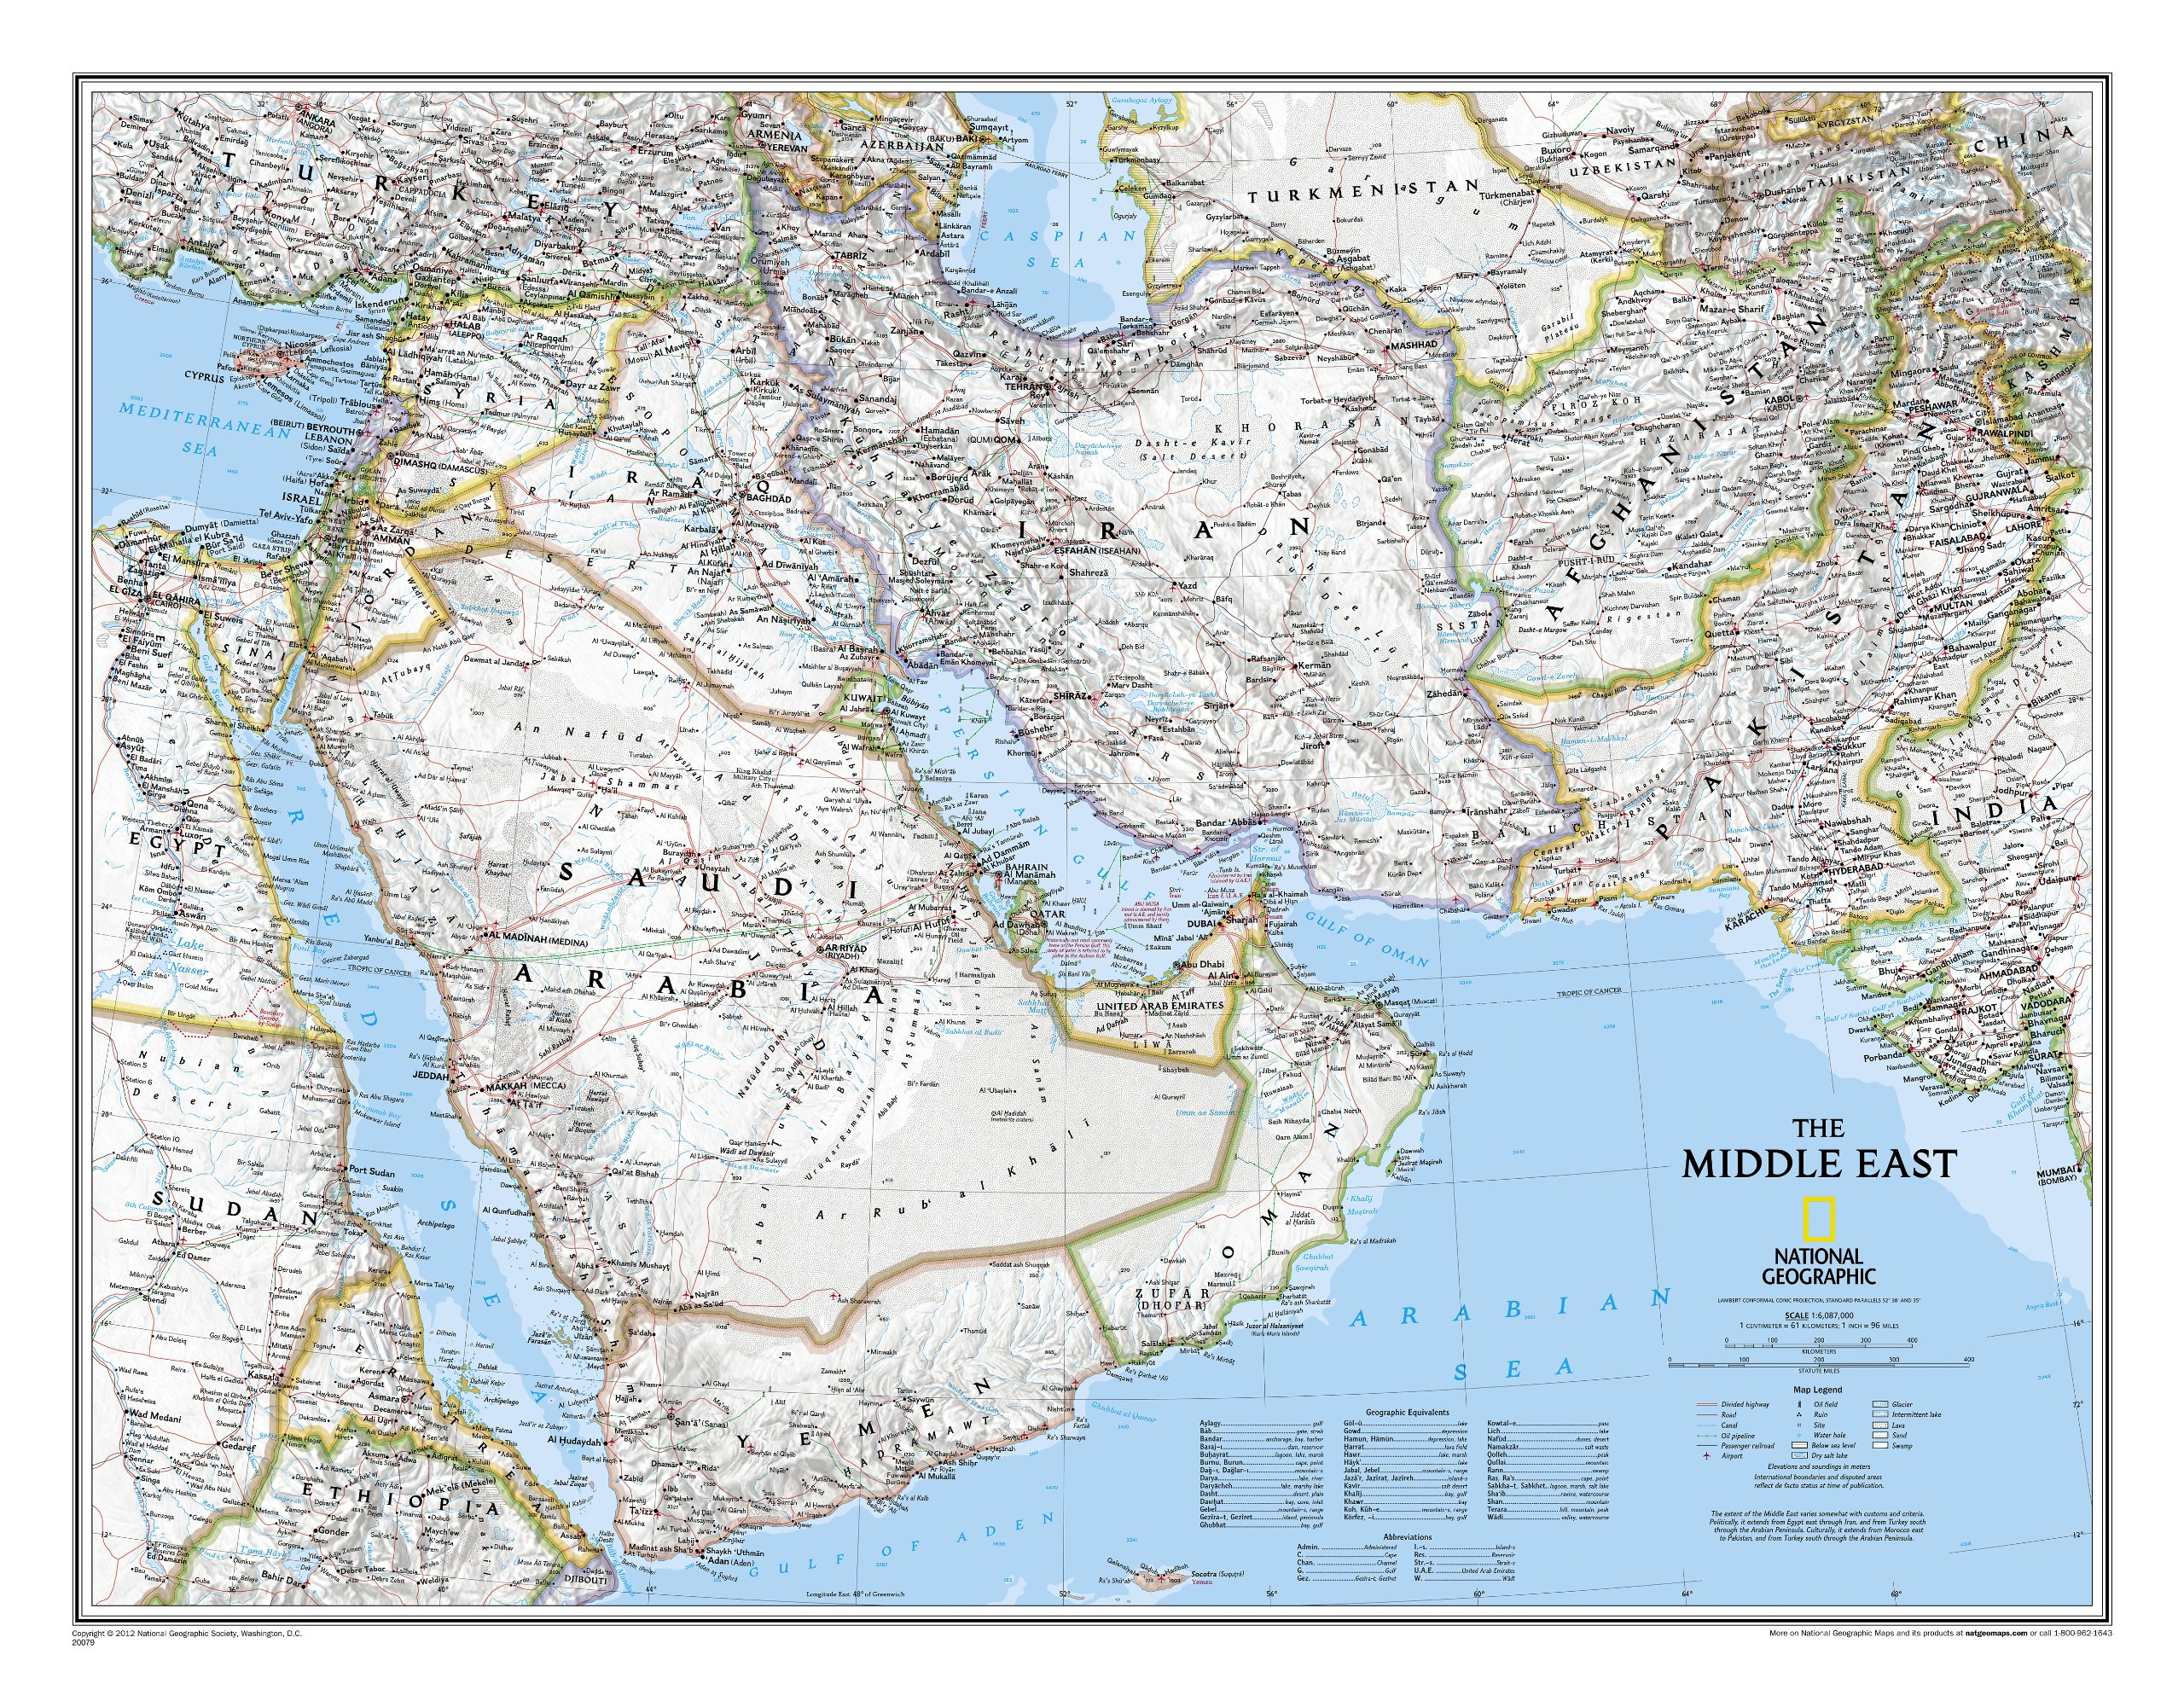 Amazon.com: Middle East [Laminated] (9780792250227): National ... Middle East Wall Maps